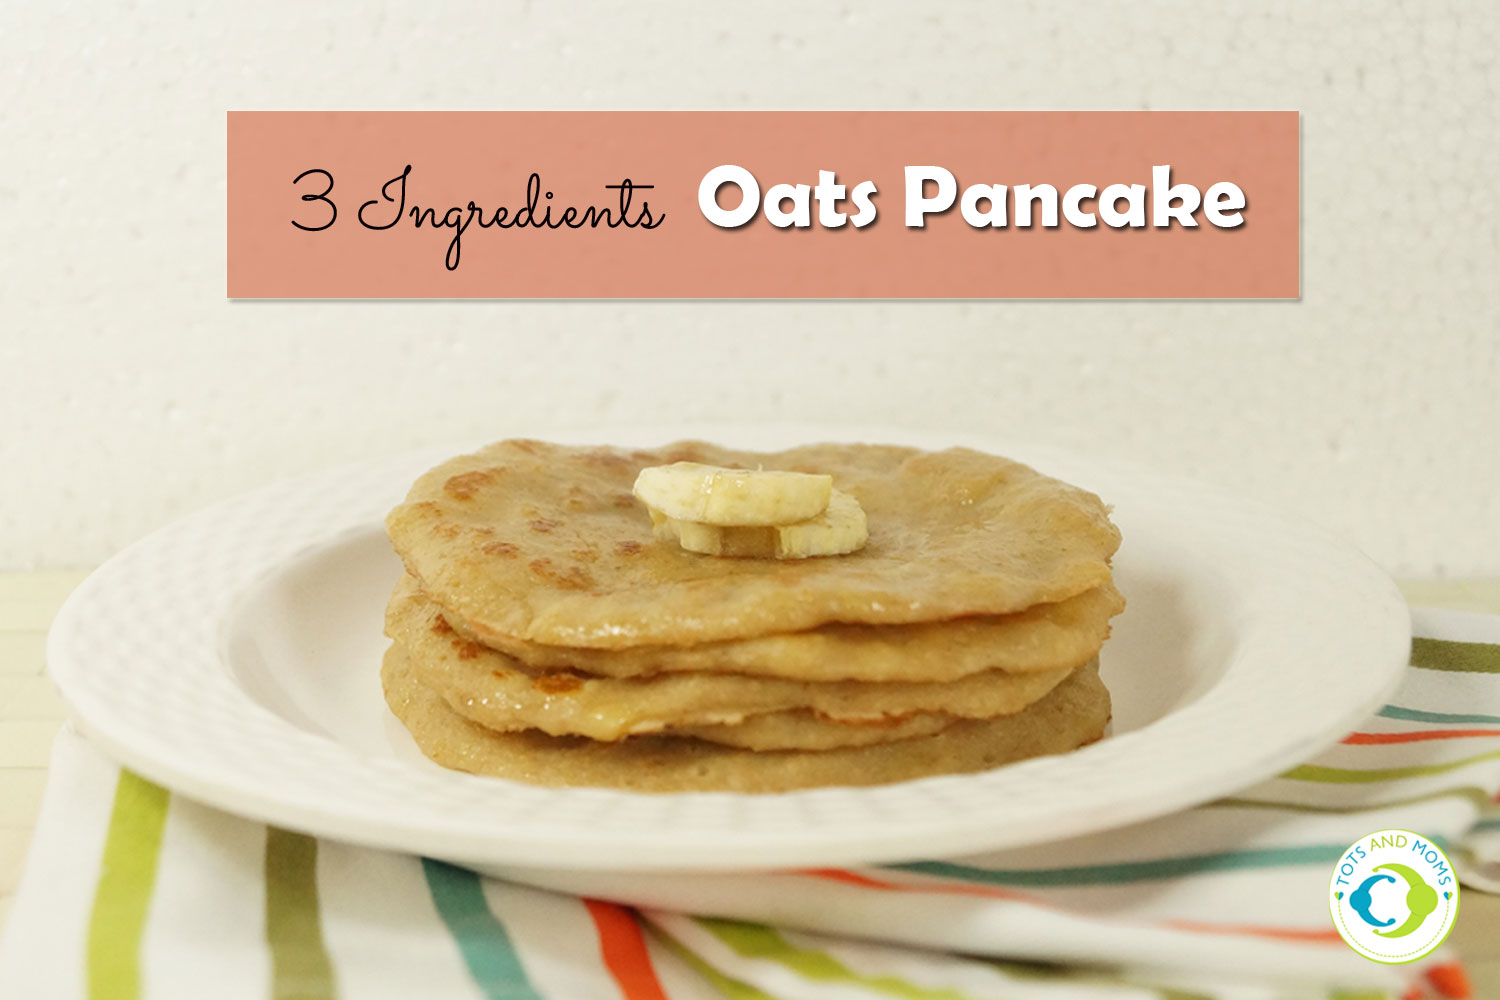 3 ingredients oats pancake for babies toddlers kids family 3 ingredients oats pancake for babies toddlers kids family how to make oats ccuart Image collections